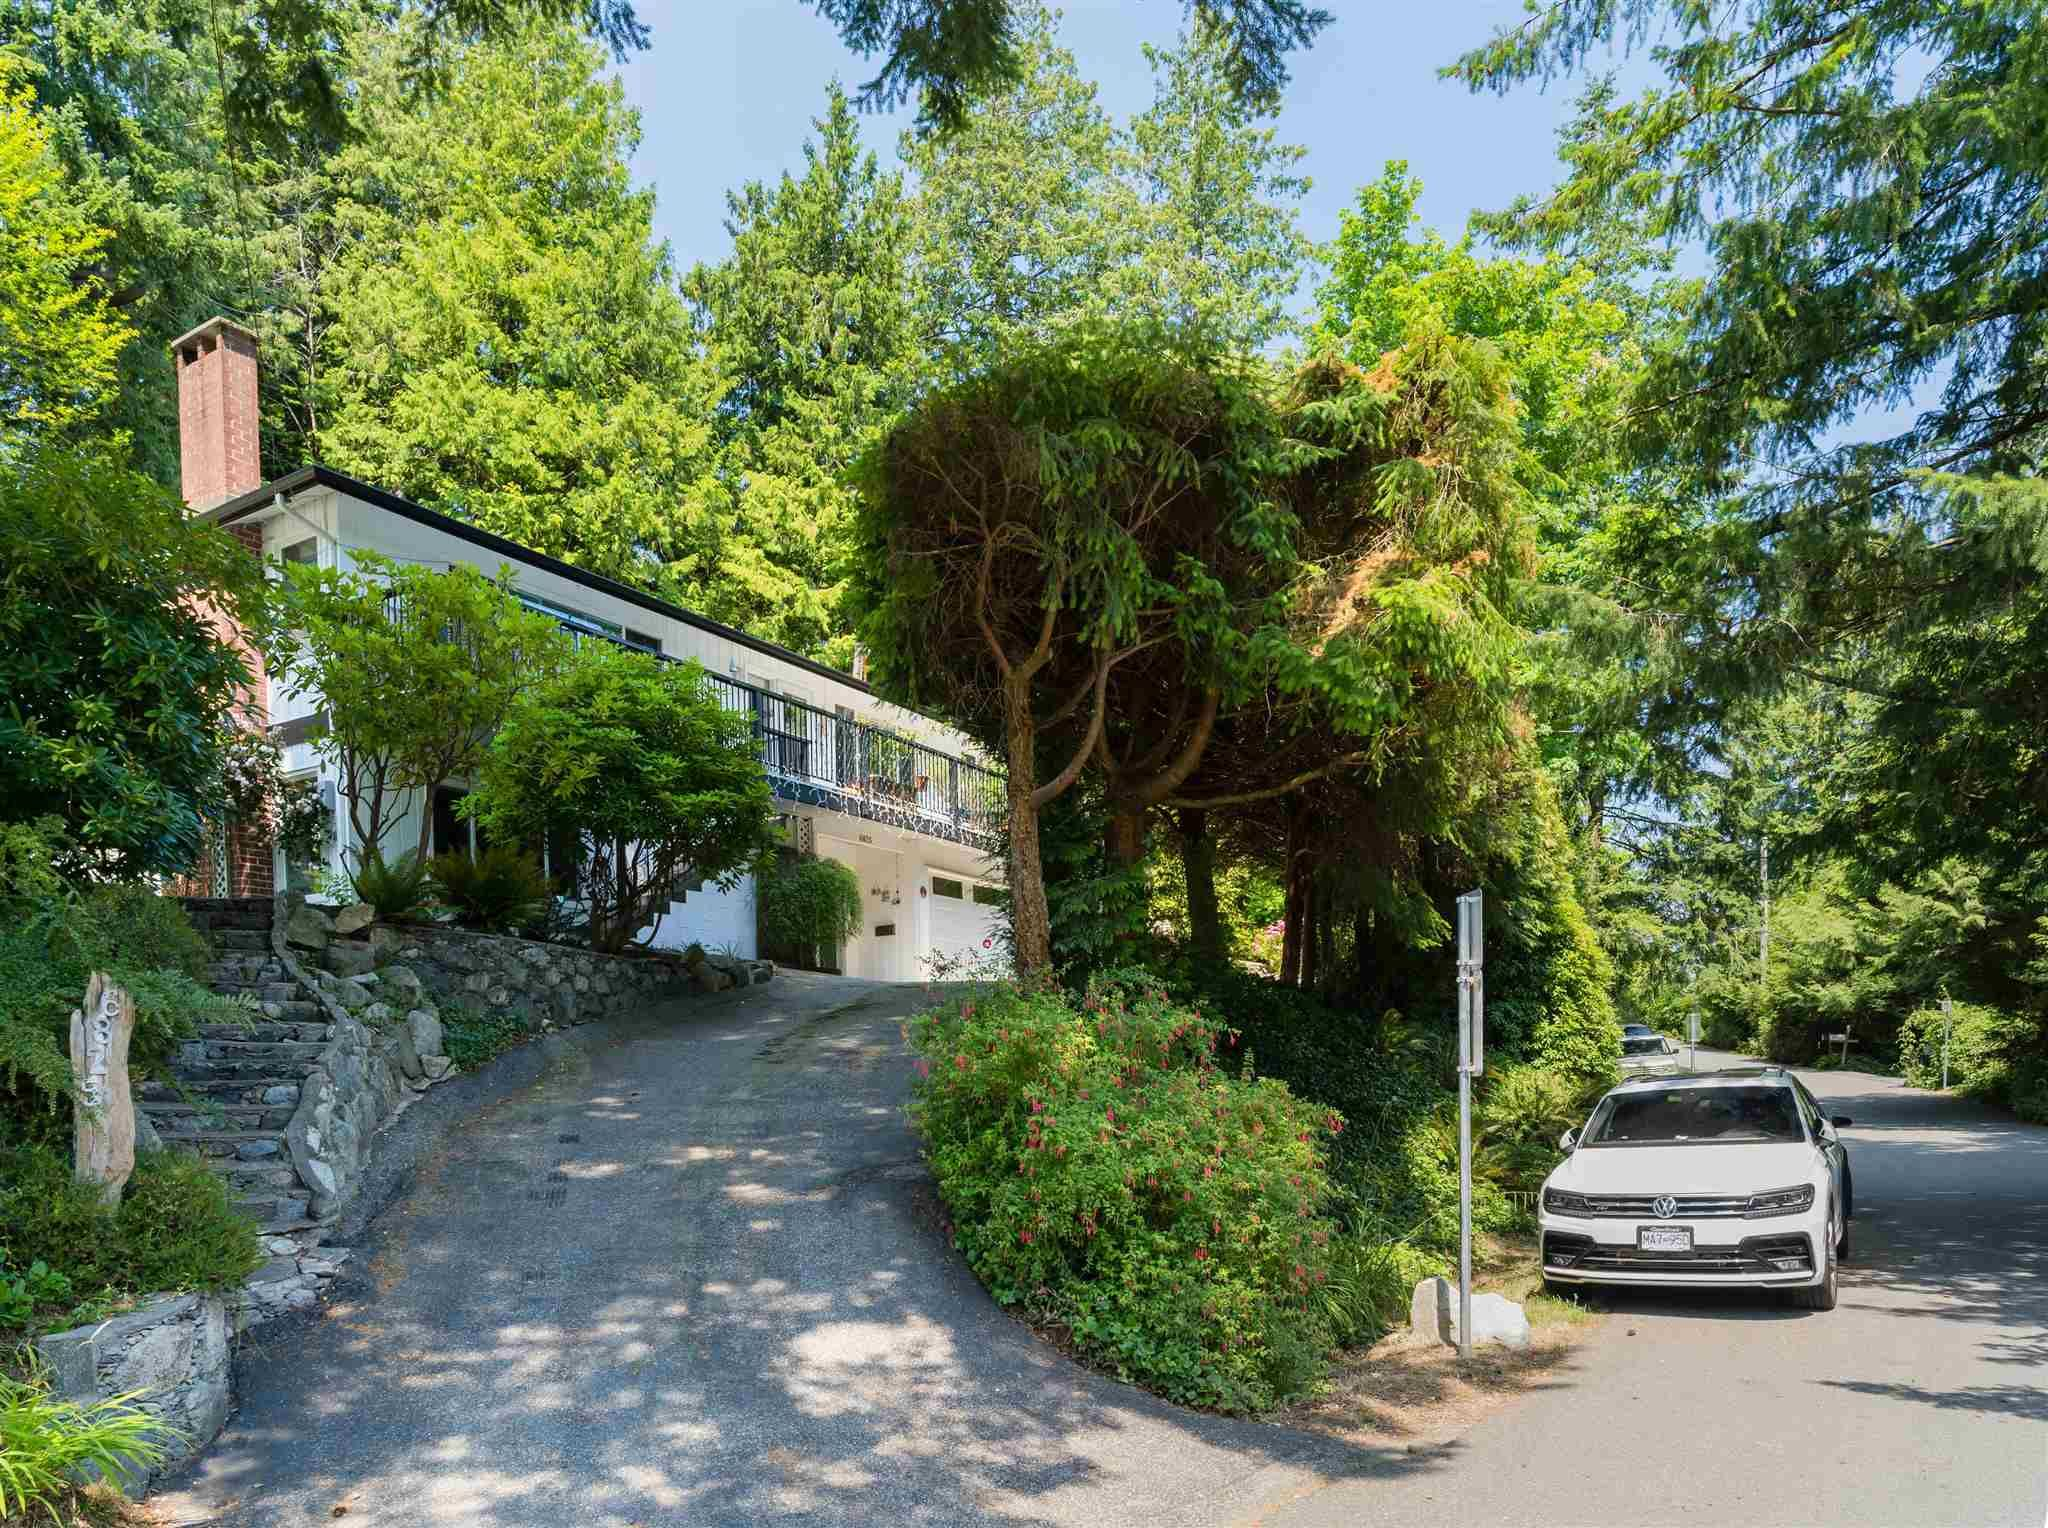 """Main Photo: 6825 HYCROFT Road in West Vancouver: Whytecliff House for sale in """"Whytecliff"""" : MLS®# R2604237"""